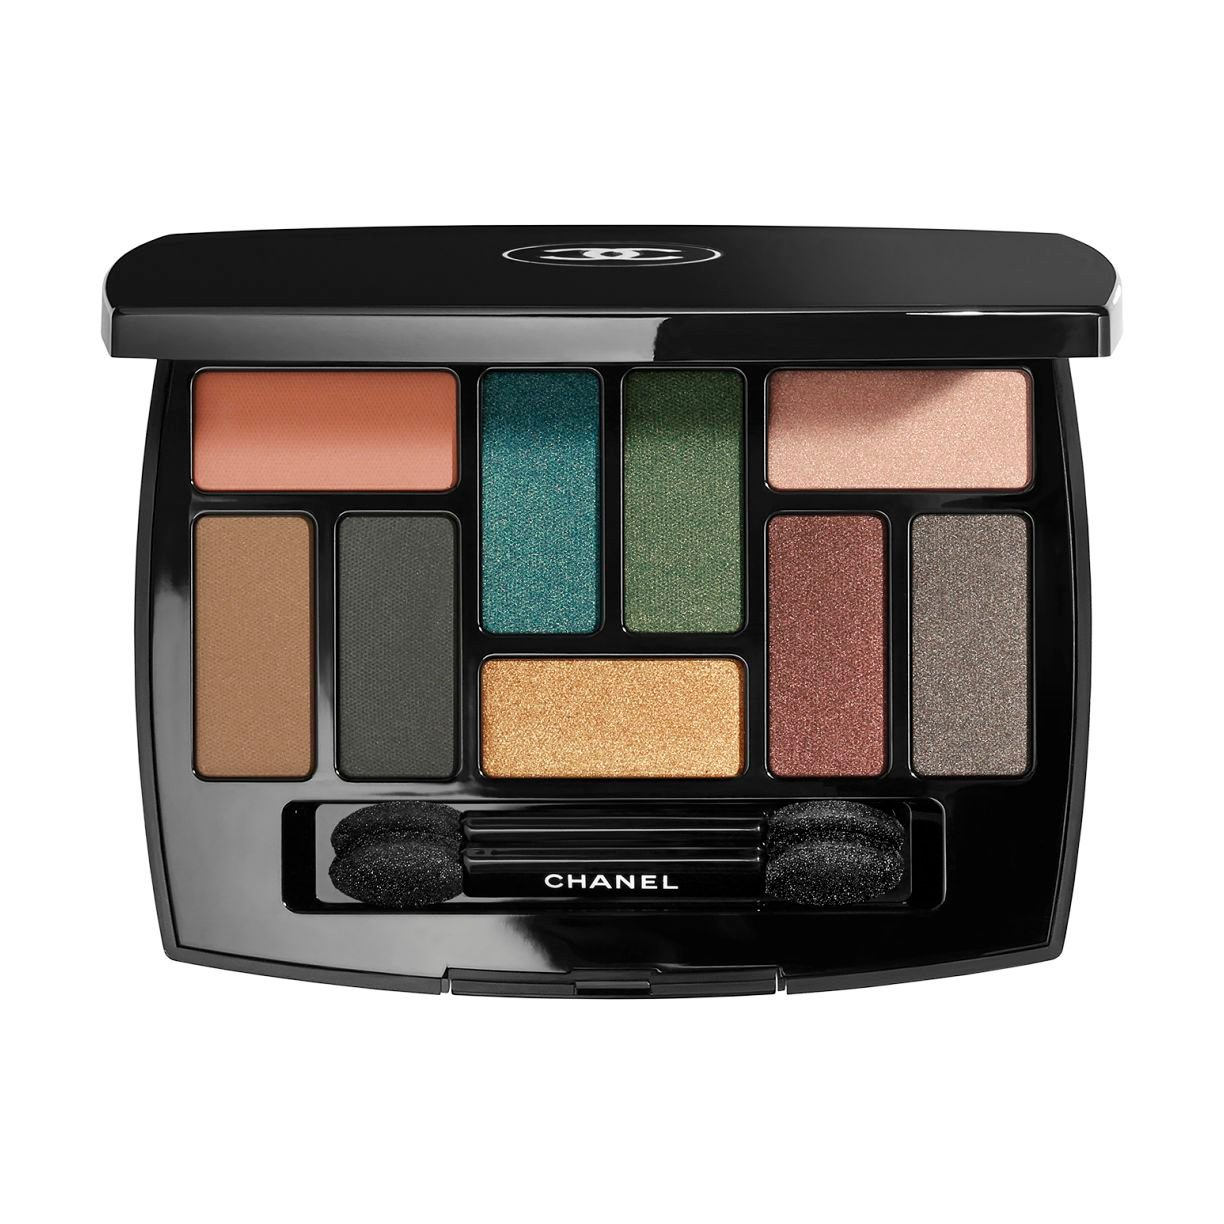 LES 9 OMBRES Exclusive Creation EYESHADOW COLLECTION